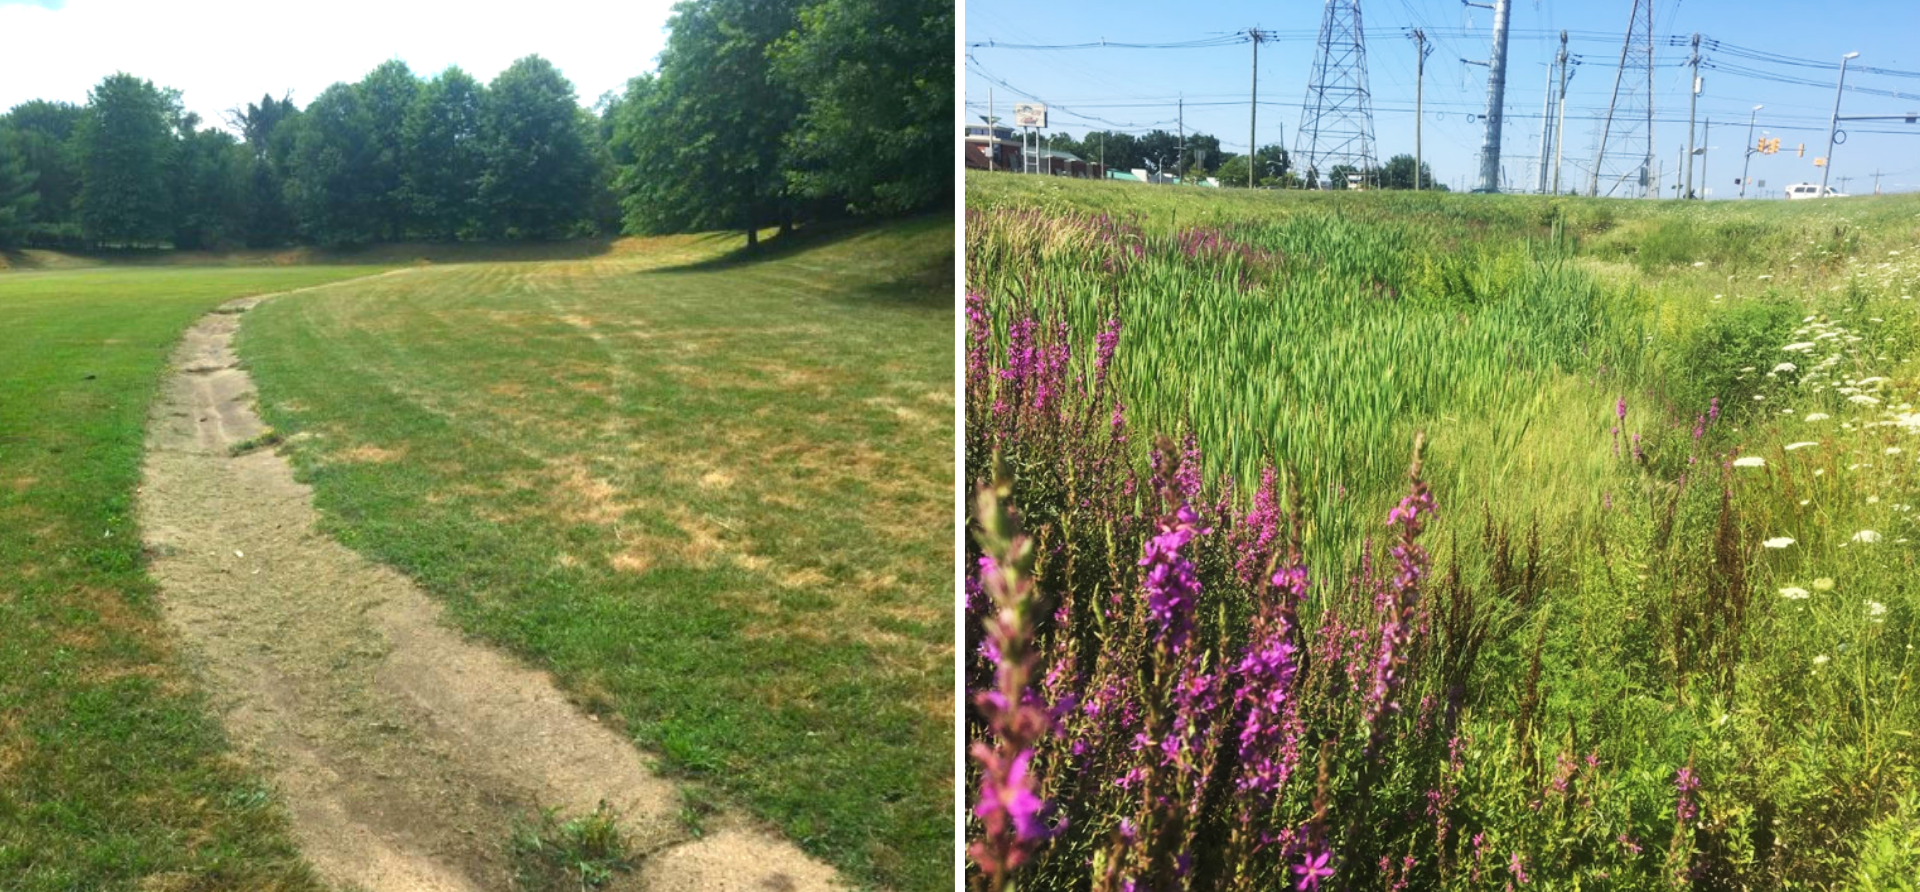 Figure 2. Two types of stormwater detention basins. On the left is the traditional style of basin with grass. On the right is an example of a basin that is lined with dense vegetation to remove pollution.